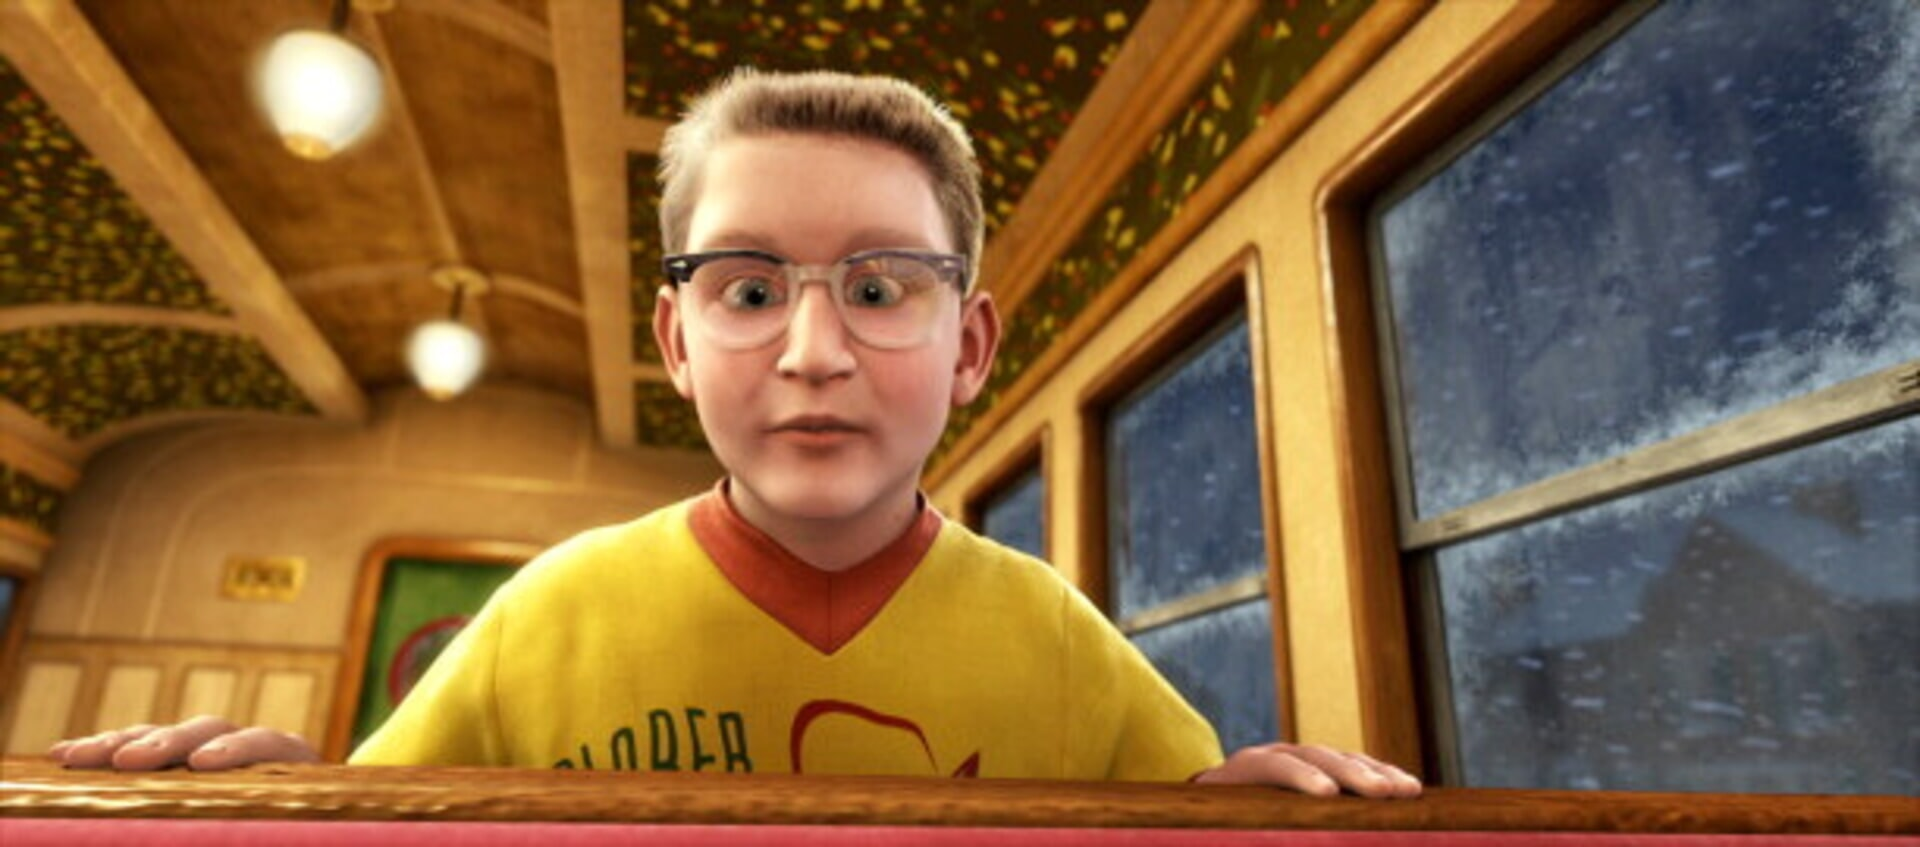 The Polar Express - Image 32